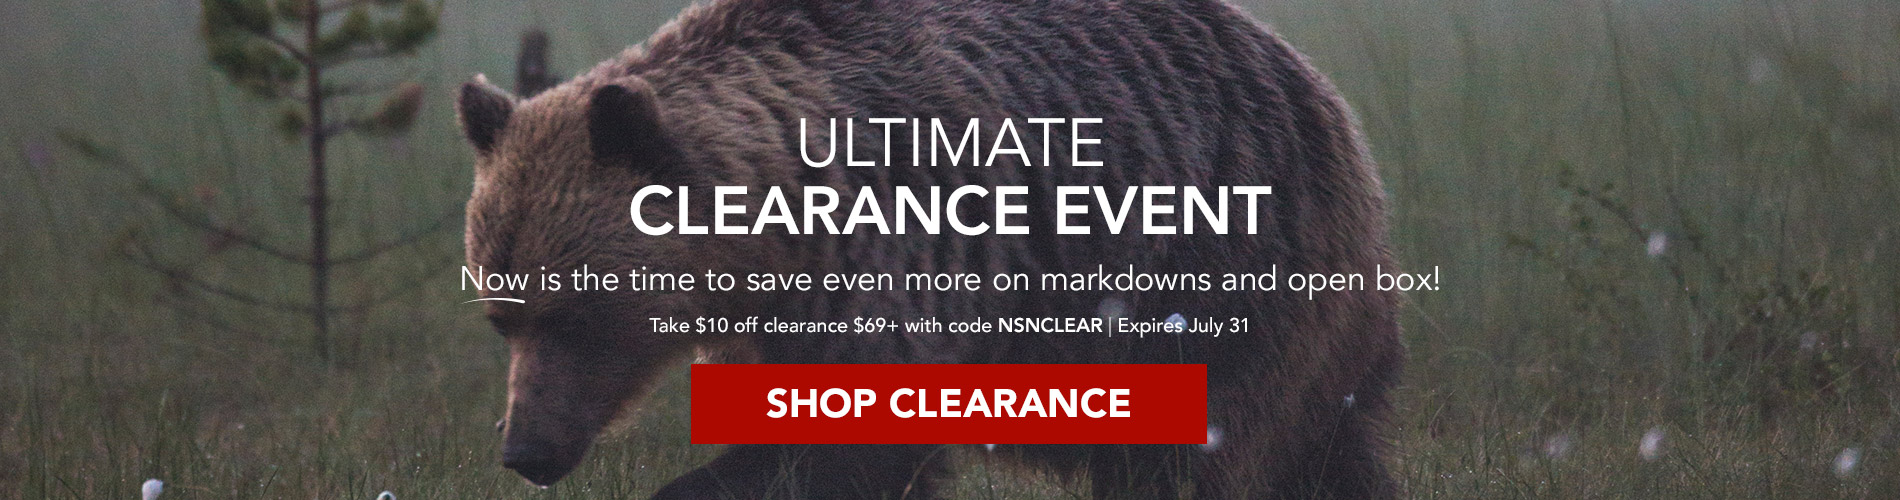 Ultimate Clearance Event! Now is the time to save even more on markdowns and open box. Take $10 off clearance $69+ with code NSNCLEAR. Expires July 31. Shop Clearance →